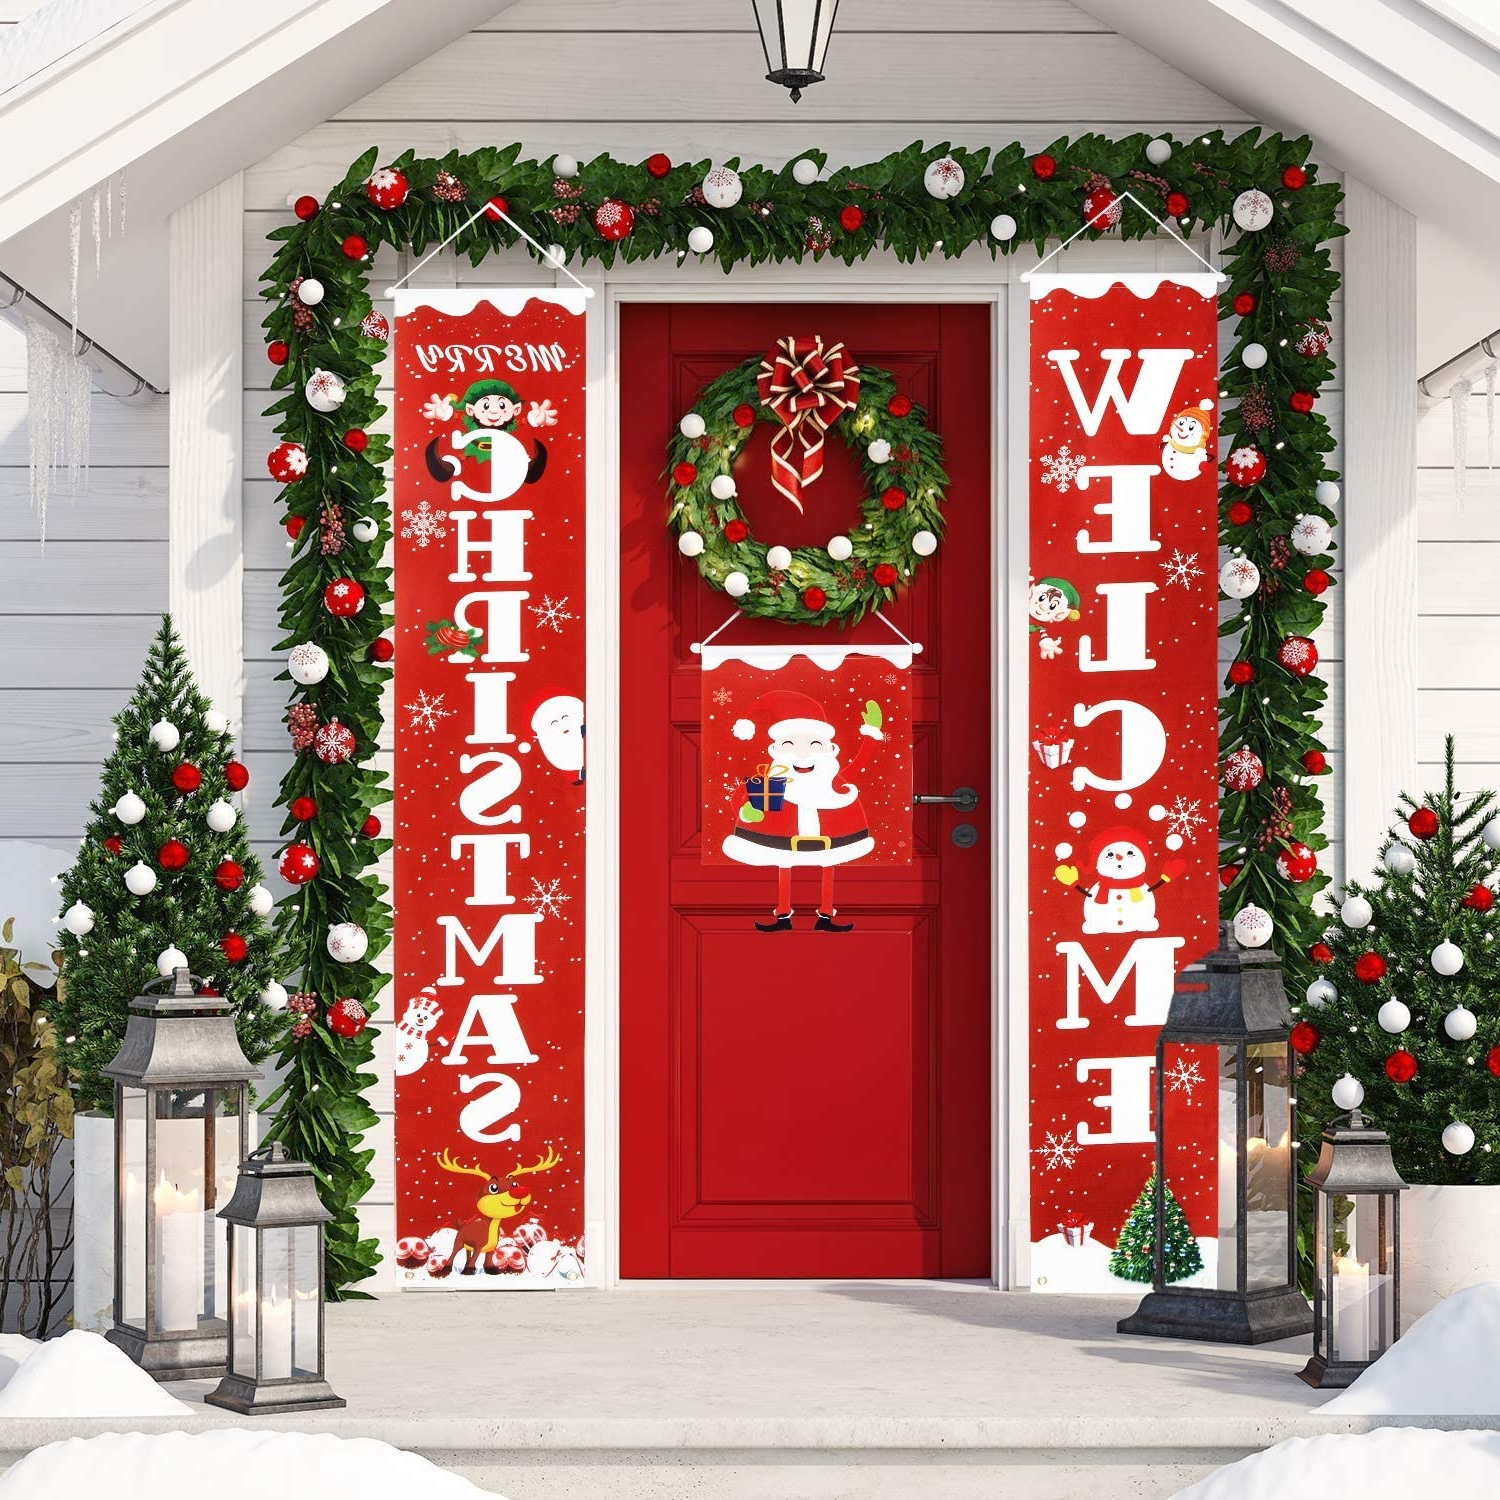 Merry Christmas Sign Wall Décor In Most Recent 3 Pcs Merry Christmas Banner Porch Decorations For Home Decor Welcome Sign For Front Door, Hanging Christmas Decorations Porch Sign For Indoor Outdoor (View 8 of 20)